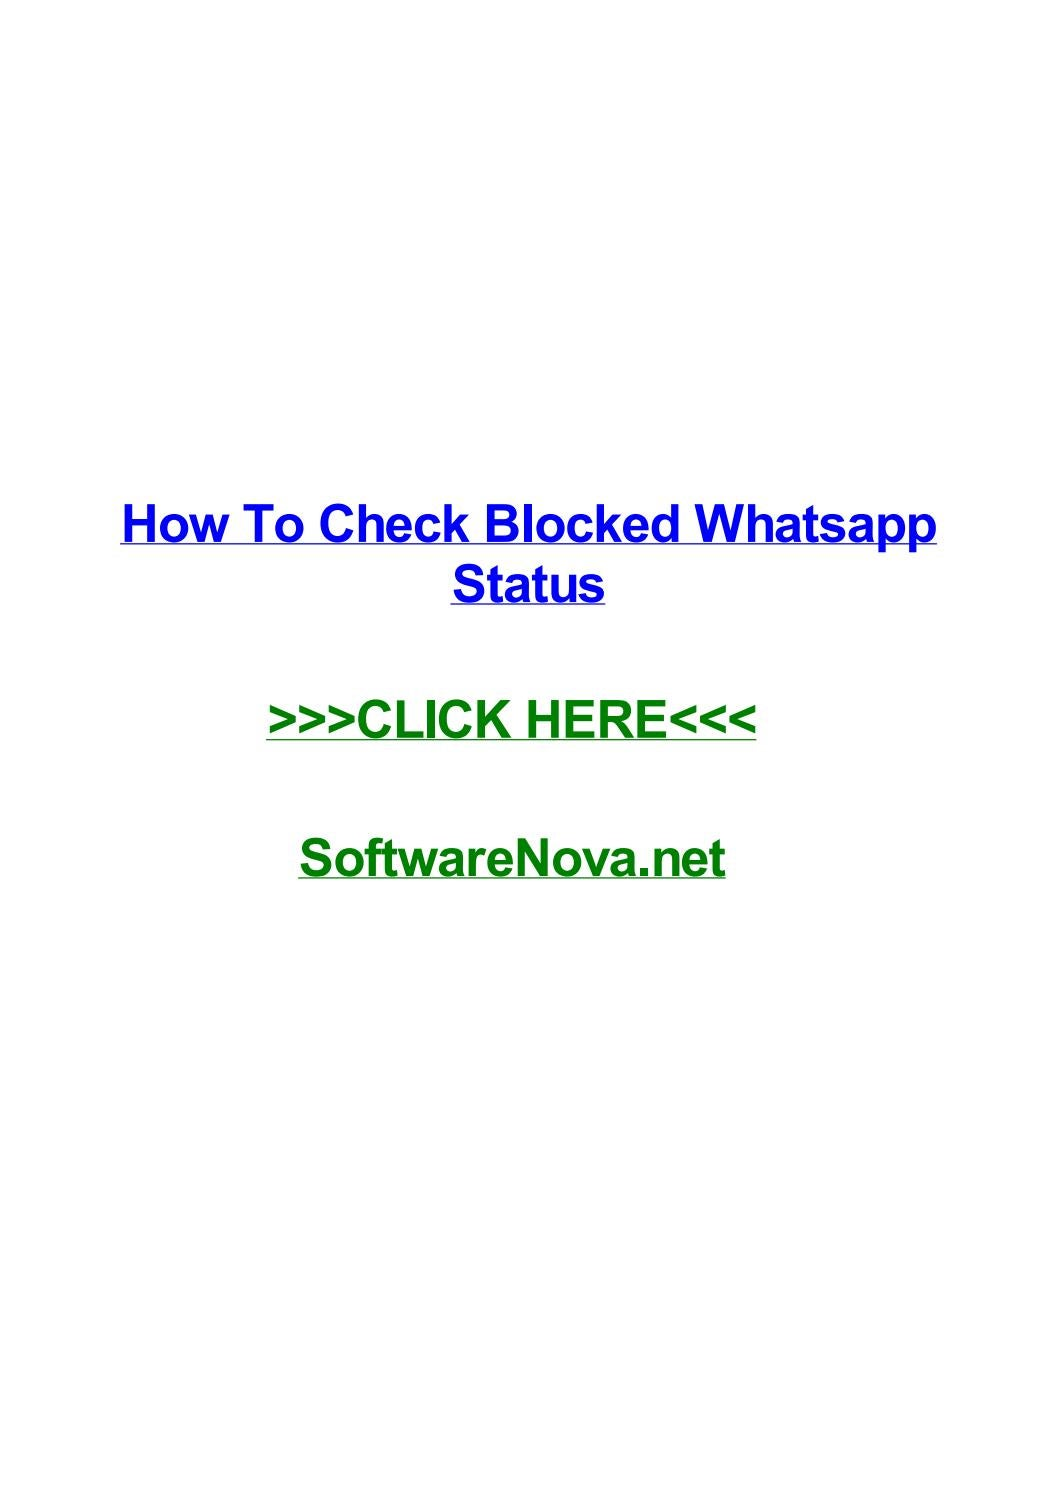 How To Check Blocked Whatsapp Status By Rodneypexzj Issuu